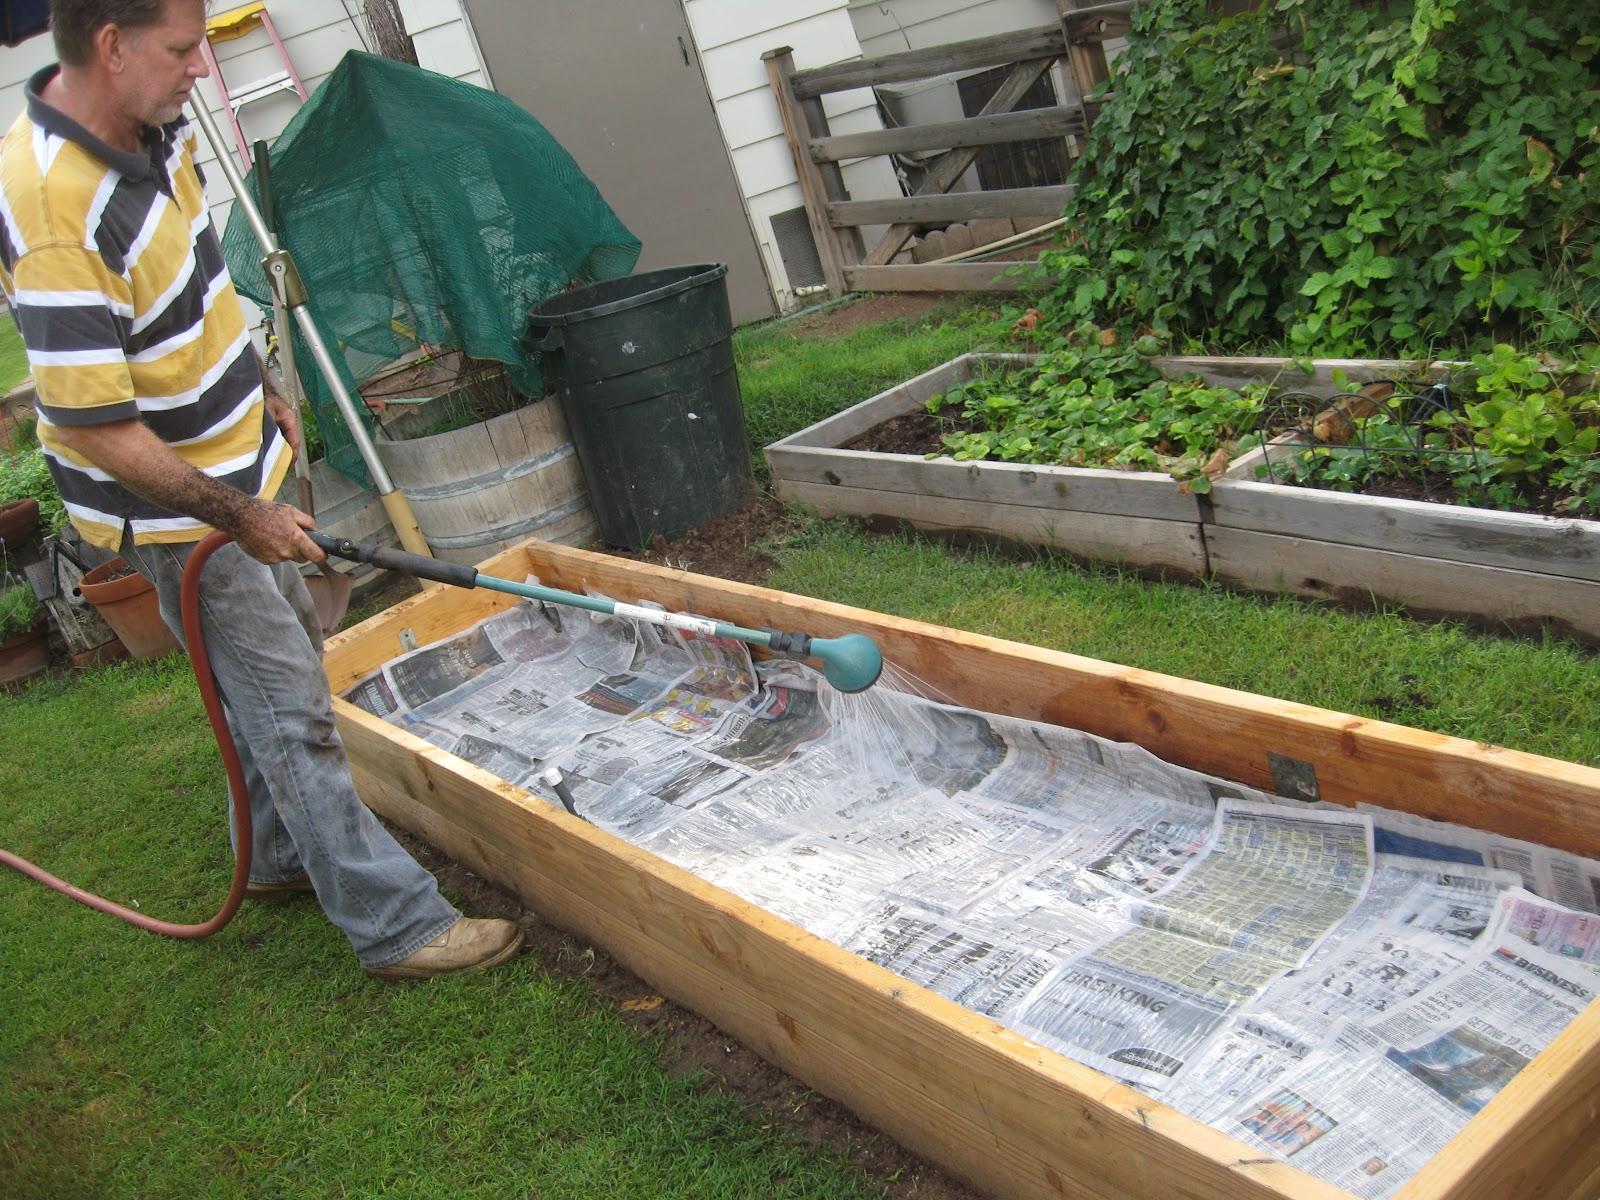 How to build a vegetable garden box - Saturday October 6 2012